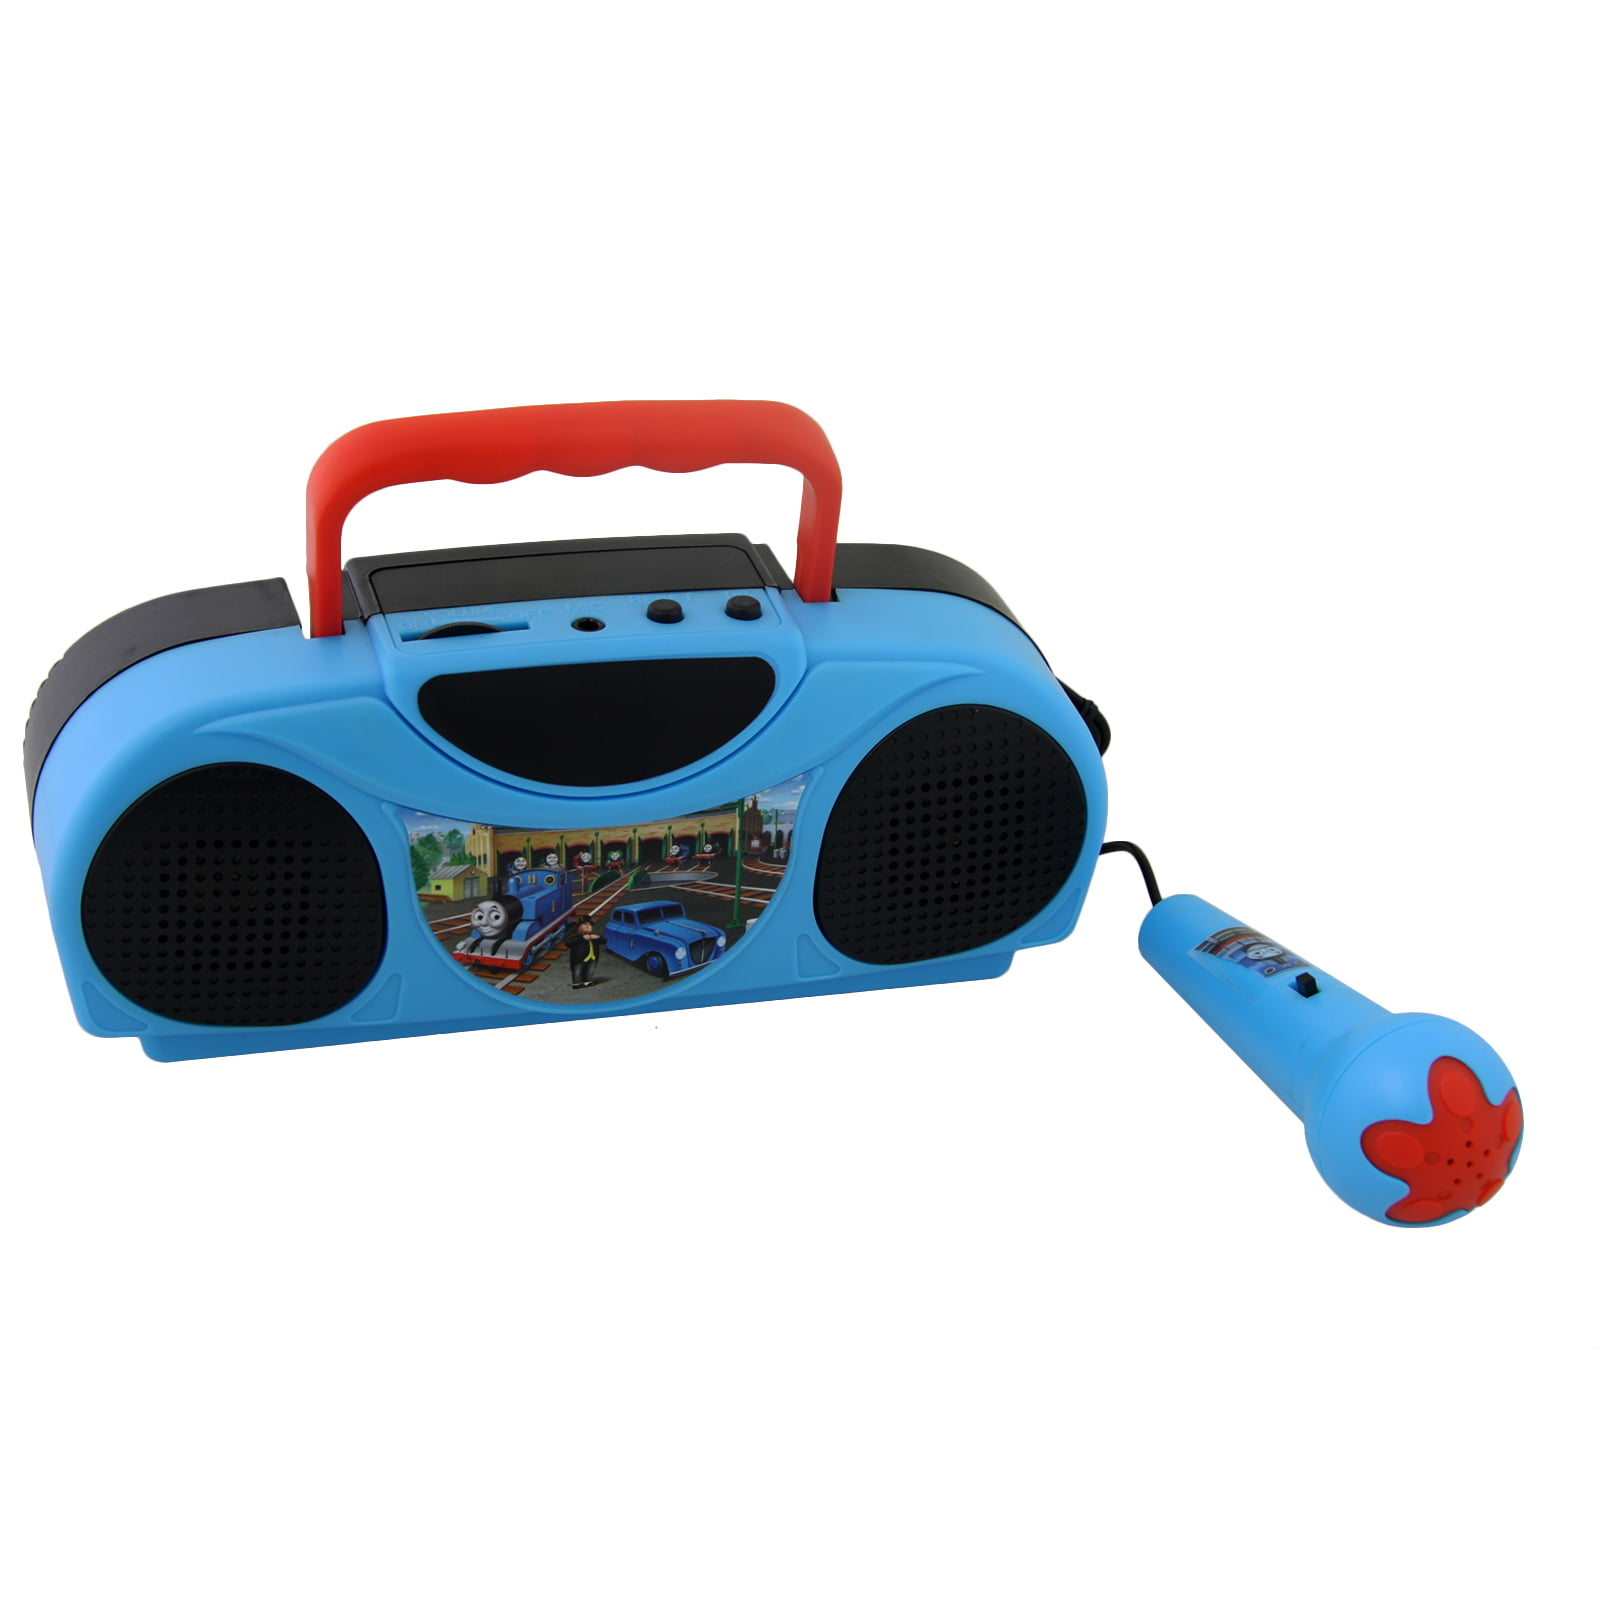 Thomas and Friends Portable Radio Karaoke Kit With Microphone by Thomas and Friends